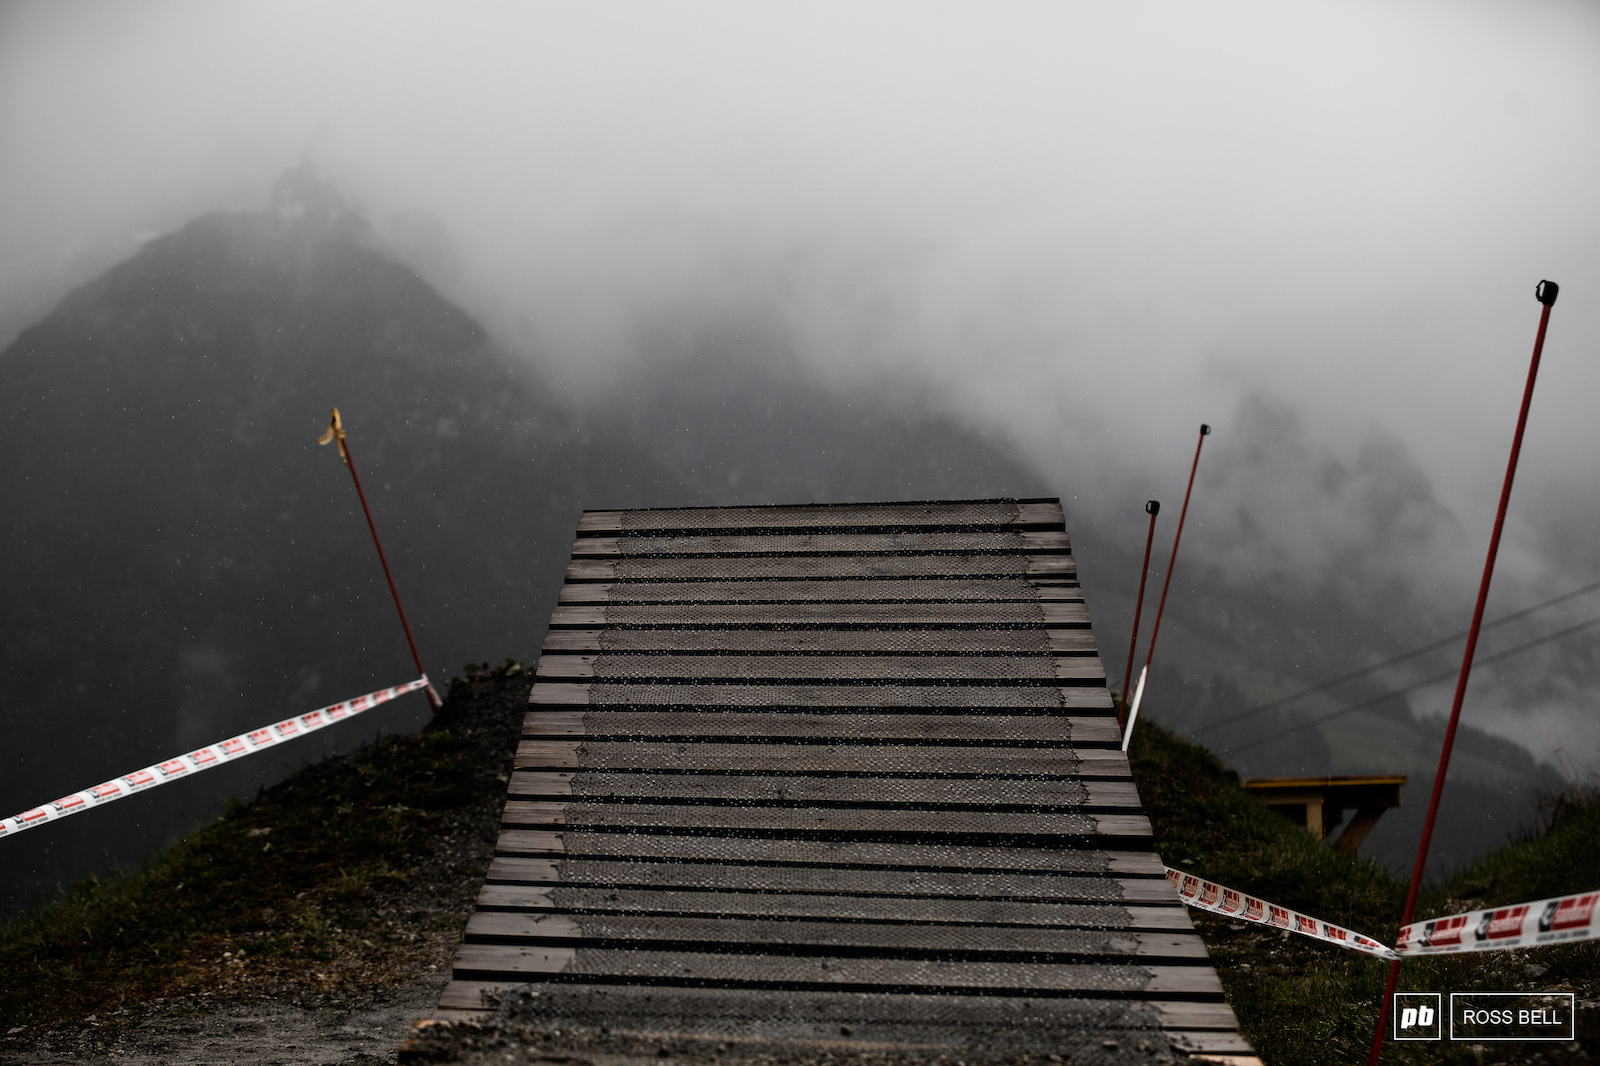 Riders normally get a good view of the Leogang mountain range on this takeoff not so much today.